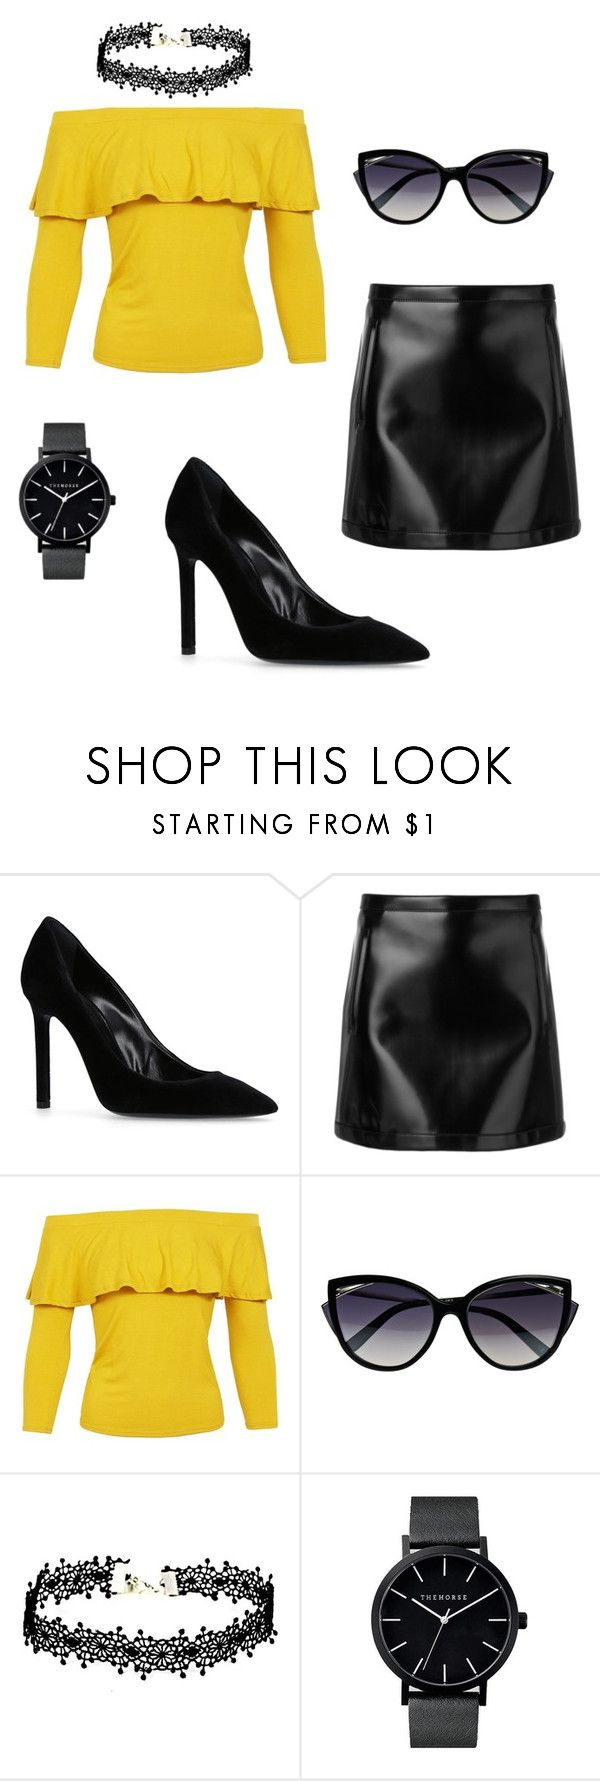 """Untitled #27"" by ivananna on Polyvore featuring Yves Saint Laurent, Philosophy di Lorenzo Serafini, Sans Souci and La Perla"